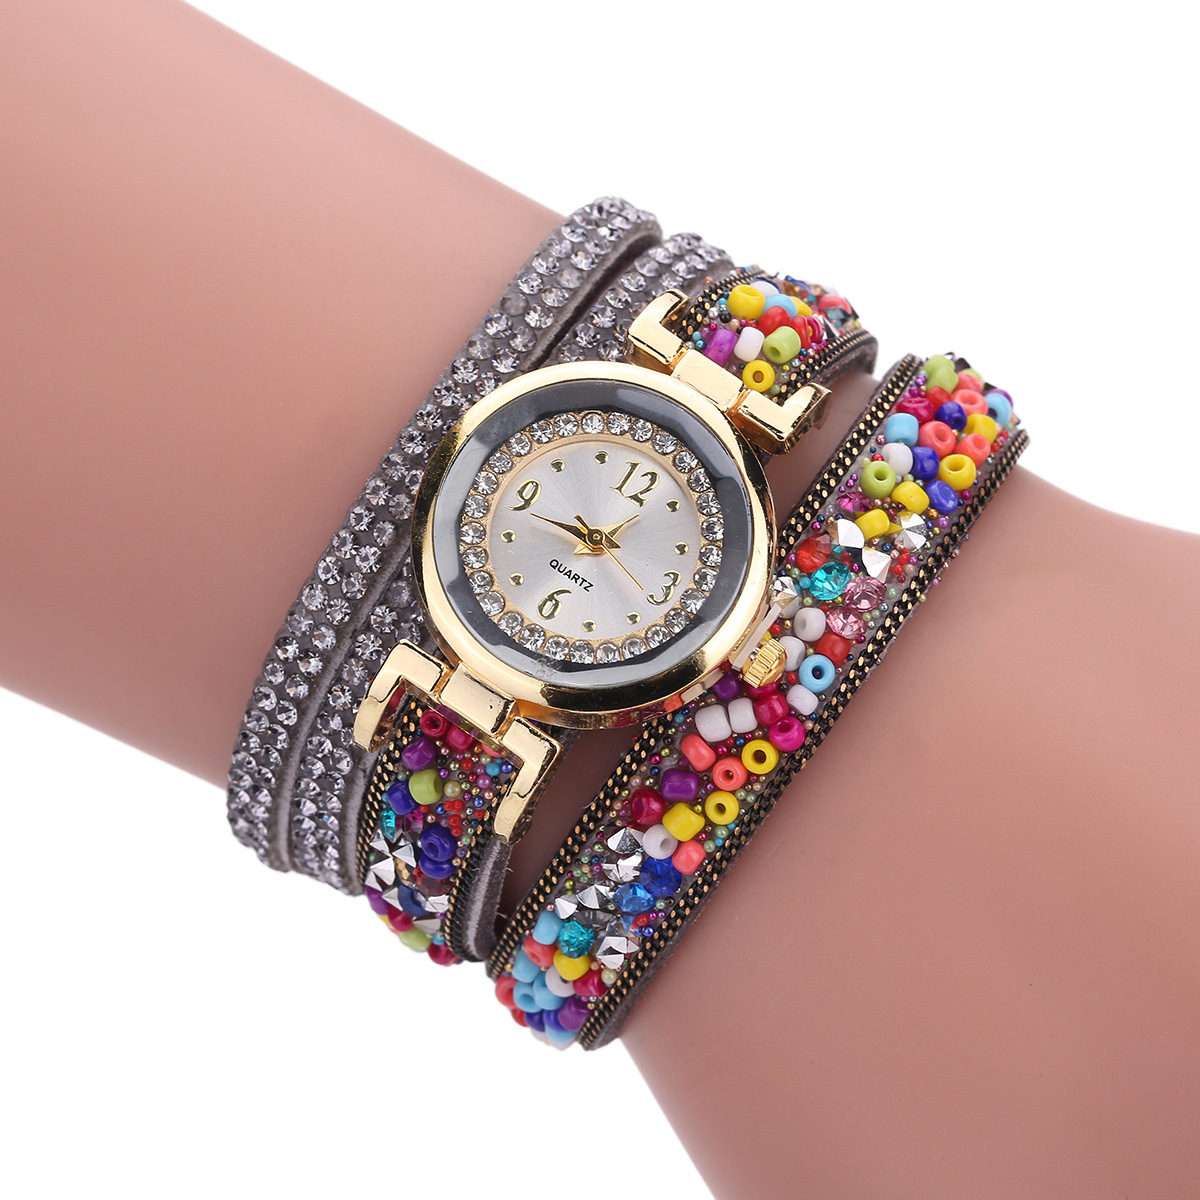 Fashion Luxury Leather Watch Kvinnor Classic Crystal Decor Armband Watch Ladies Cheap Quartz Watch Ceasuri Women Reloj Mujer